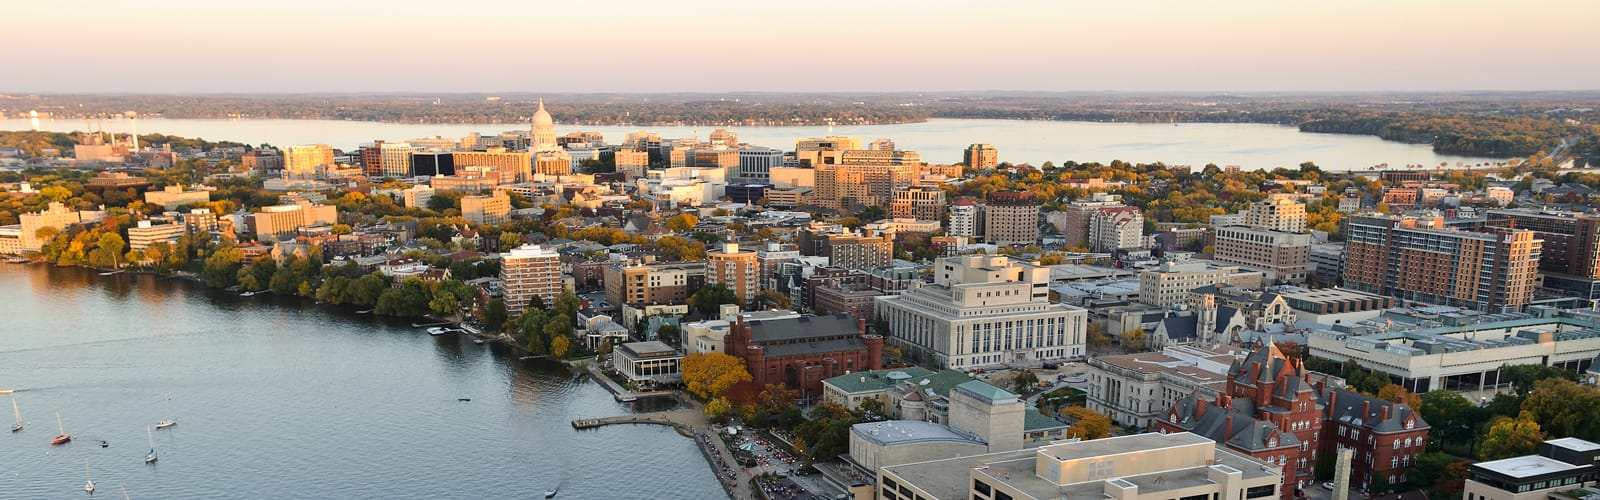 A wide shot of the Isthmus with the capitol building at the center. You can see the lakes on the bottom left and top right corners with a slight hint of morning daylight.